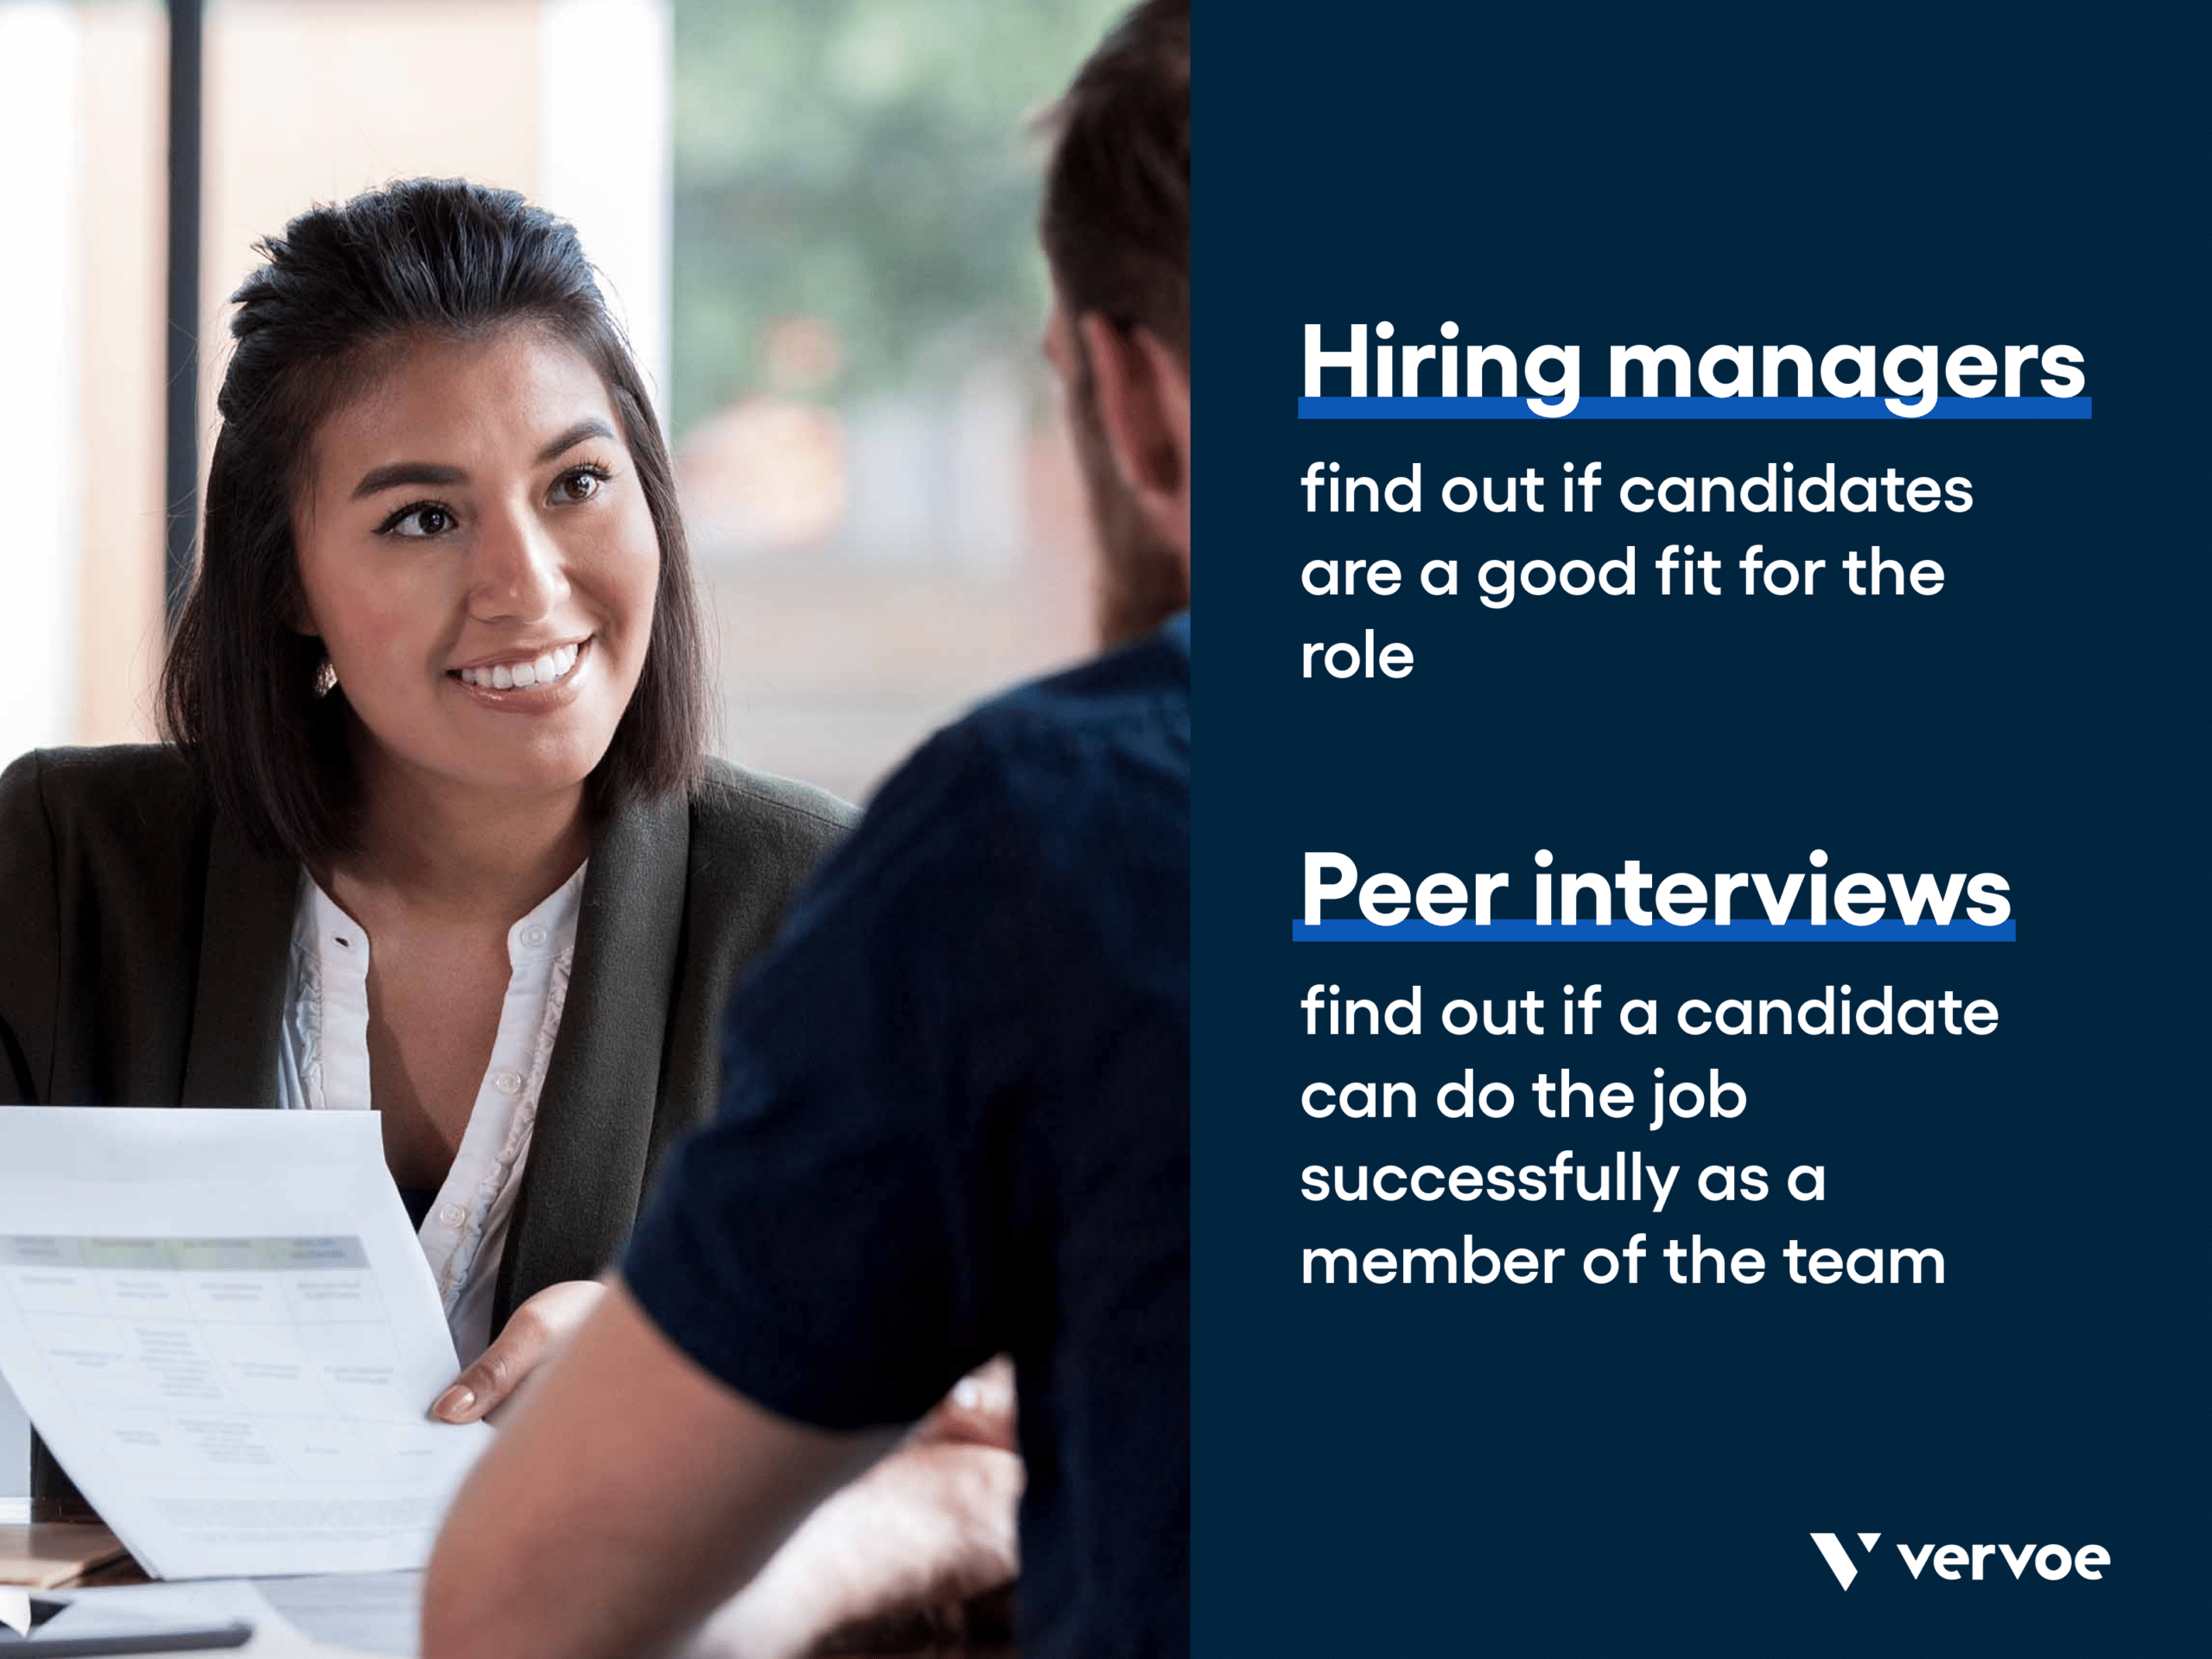 The difference between the role of hiring managers and peer interviewing